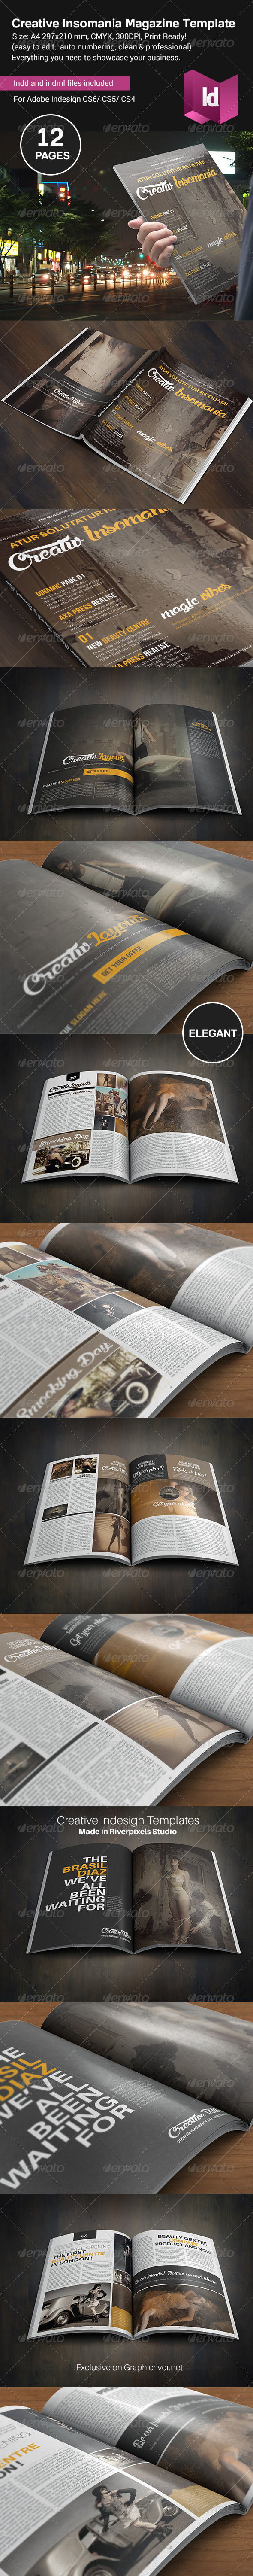 GraphicRiver Creative Insomania Magazine Template 8631795